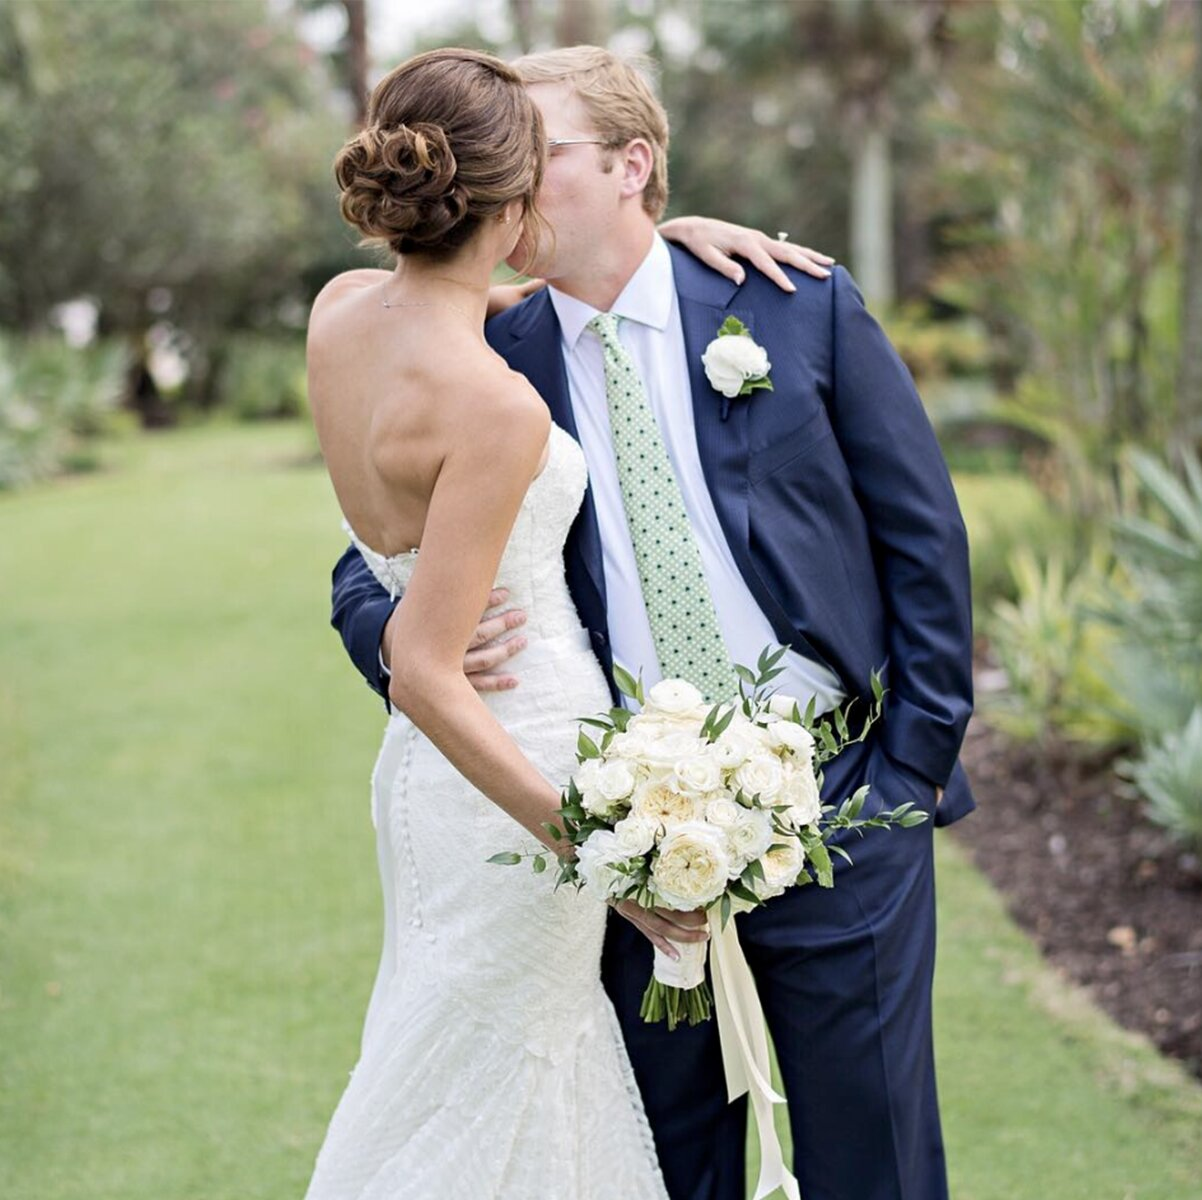 sydney-wedding-flower-packages-prices-affordable-bride-bouquet